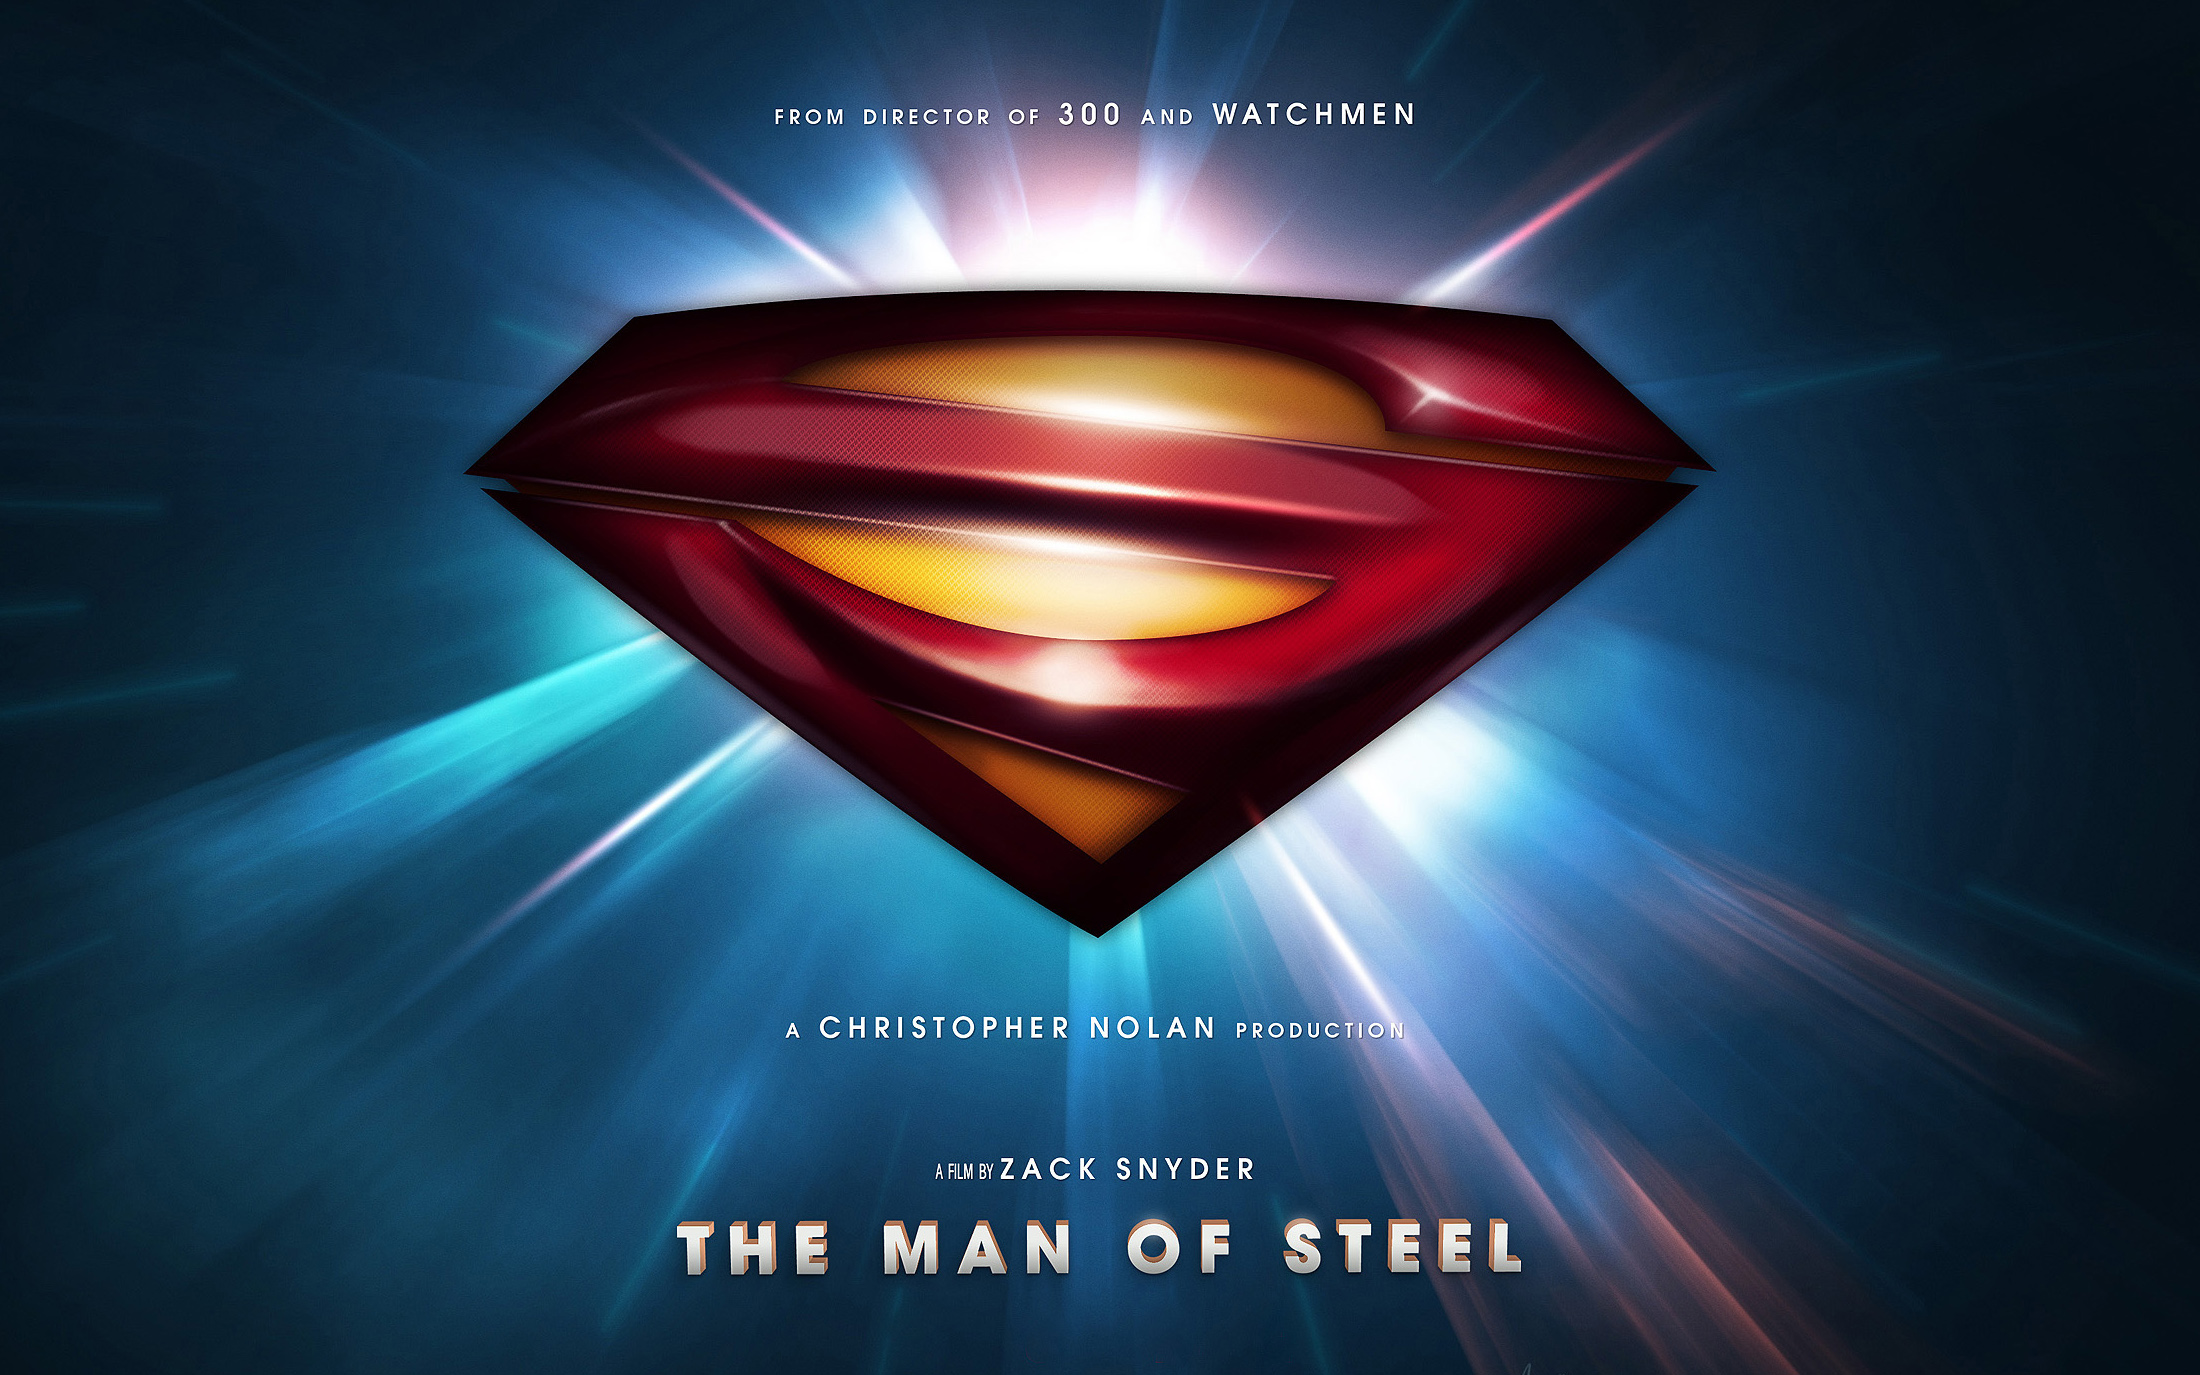 Superman Man of Steel 2013 844.31 Kb